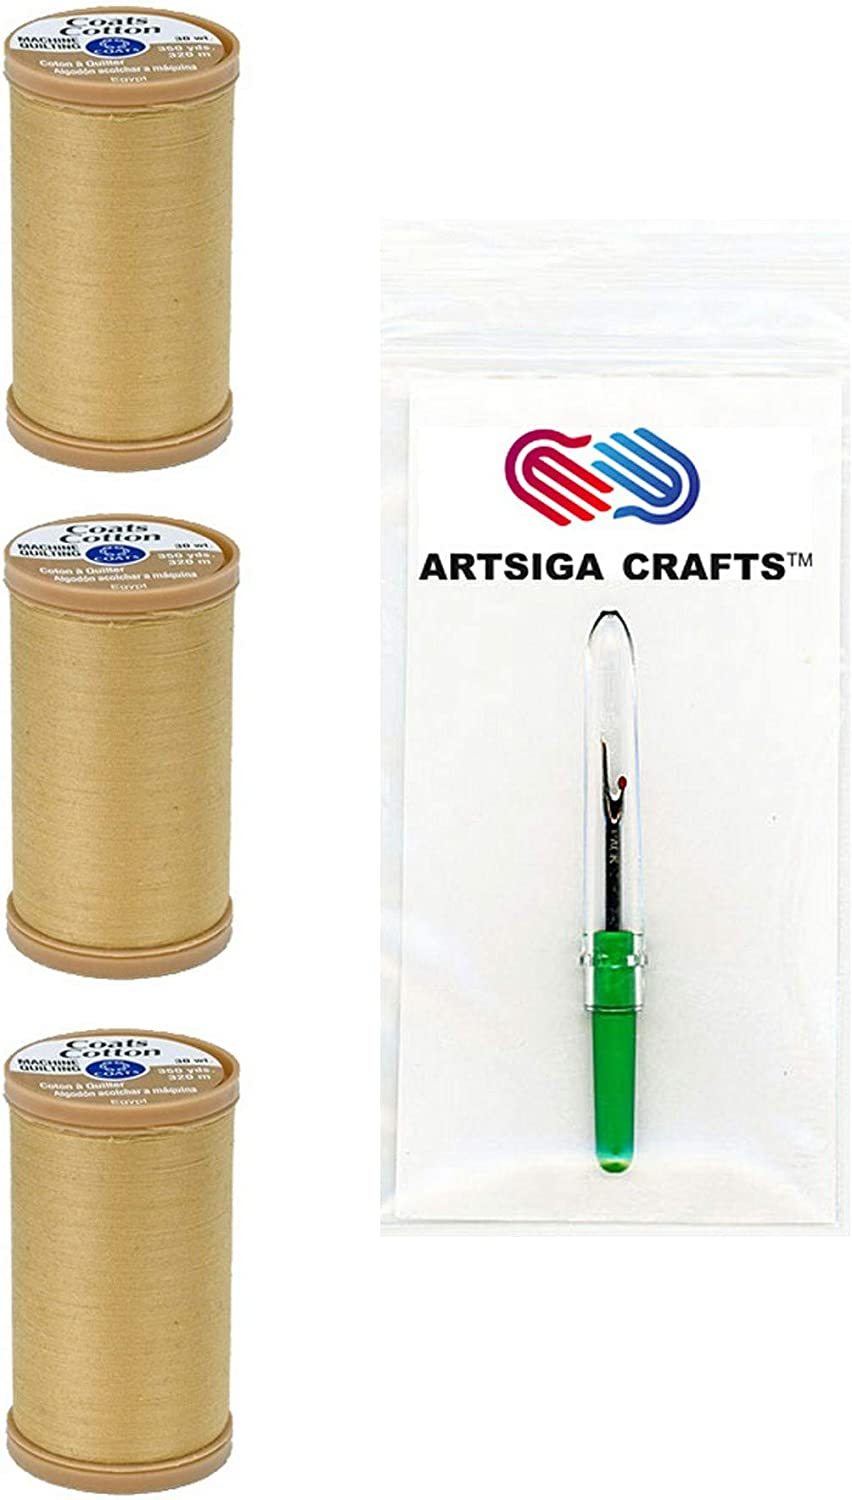 Almond Pink Bundle with 1 Artsiga Crafts Seam Ripper S975-1060-3P 3-Pack Coats /& Clark Sewing Thread Machine Quilting Pure Egyptian Cotton Thread 350 Yards